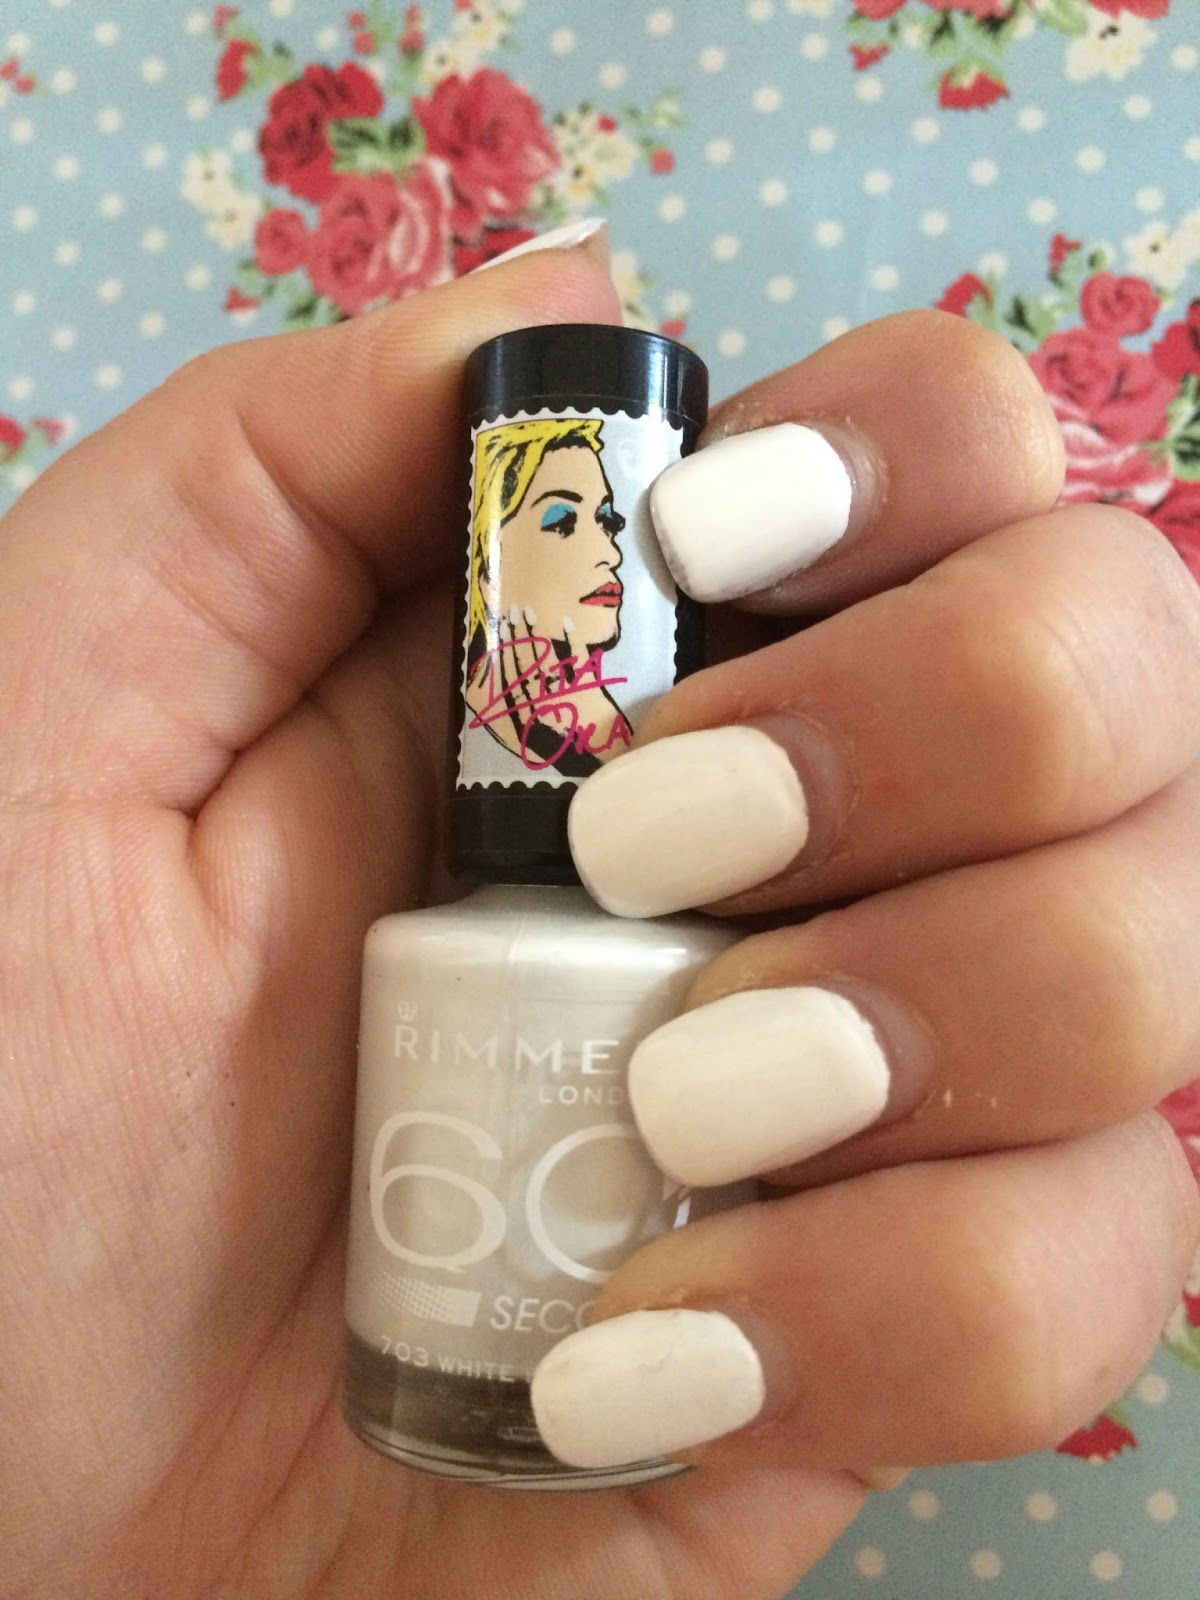 Rimmel by Rita Ora 60 Second Nail Polish - White Hot Love